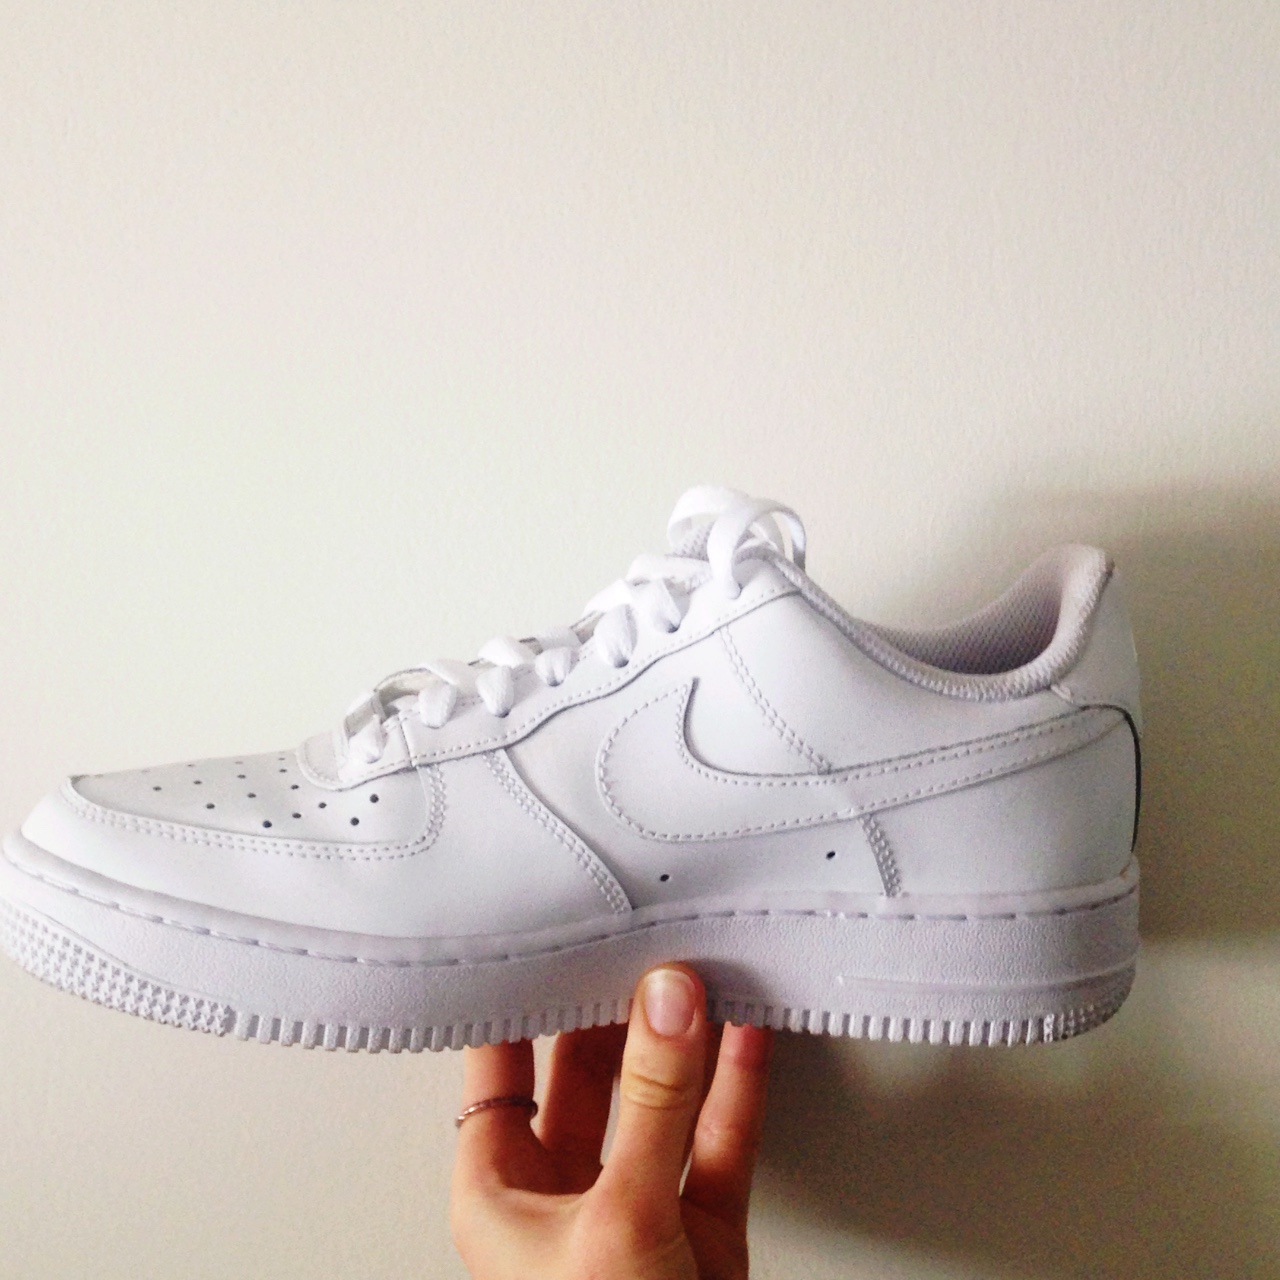 Women's White Nike Air Force 1 Size 7.5